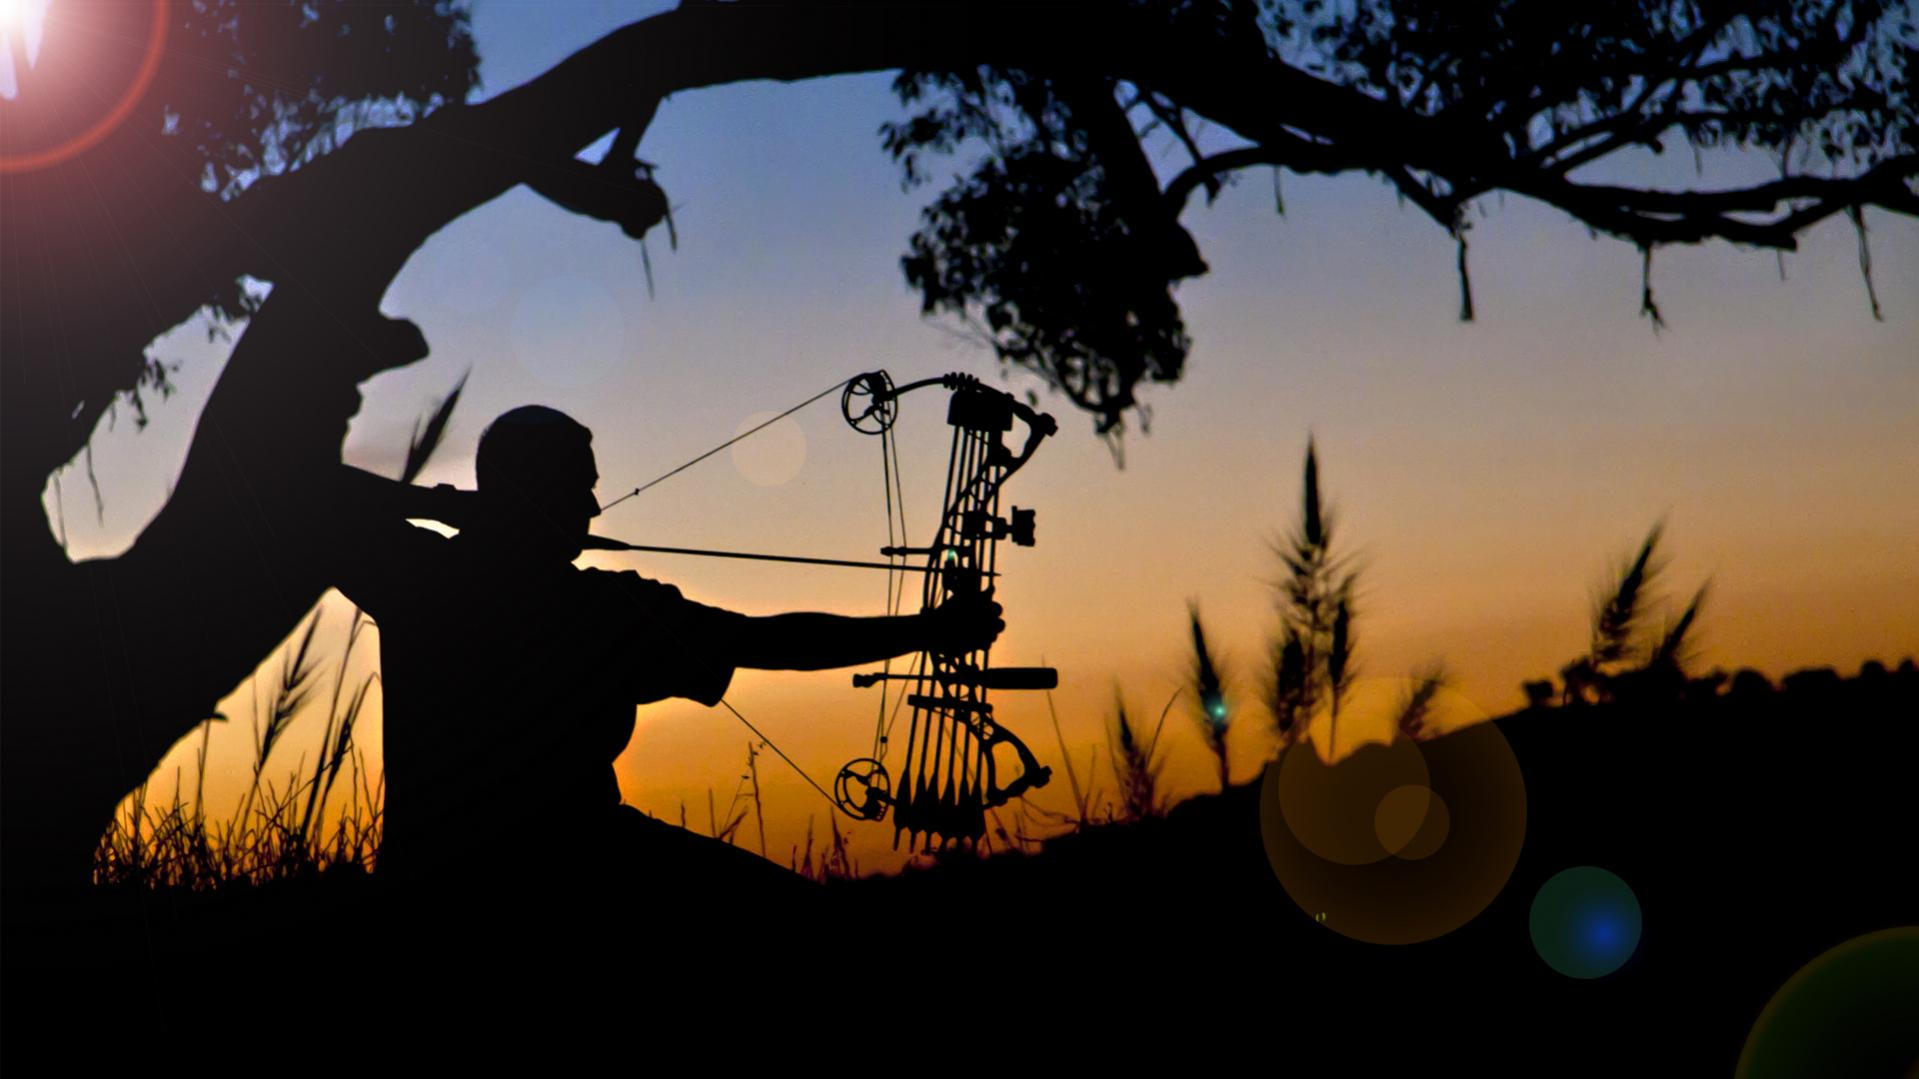 Elite Archery Wallpaper Images Pictures   Becuo 1919x1079